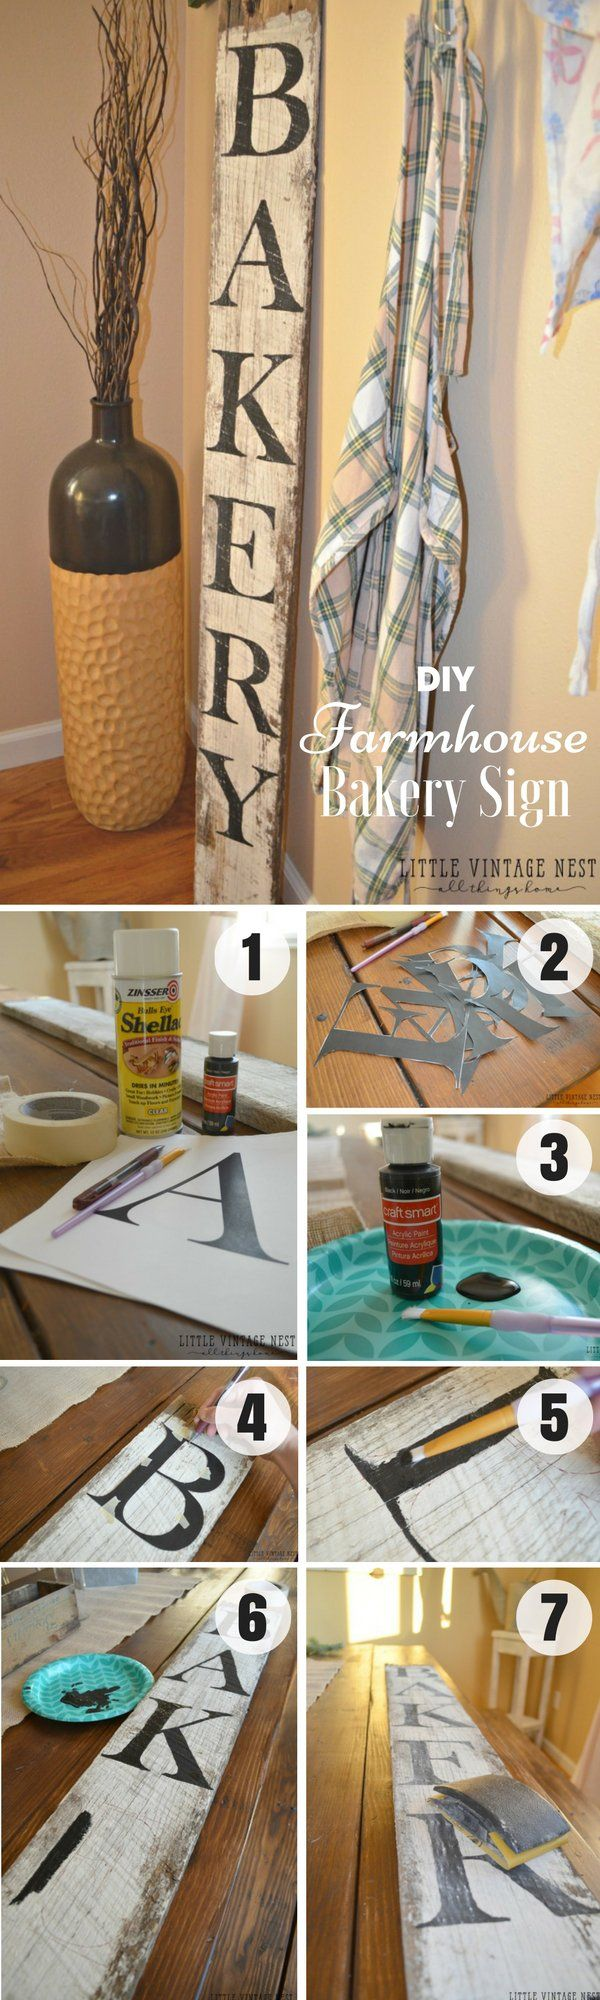 Primitive wood crafts to make - 17 Fab Diy Farmhouse Signs You Can Make Yourself